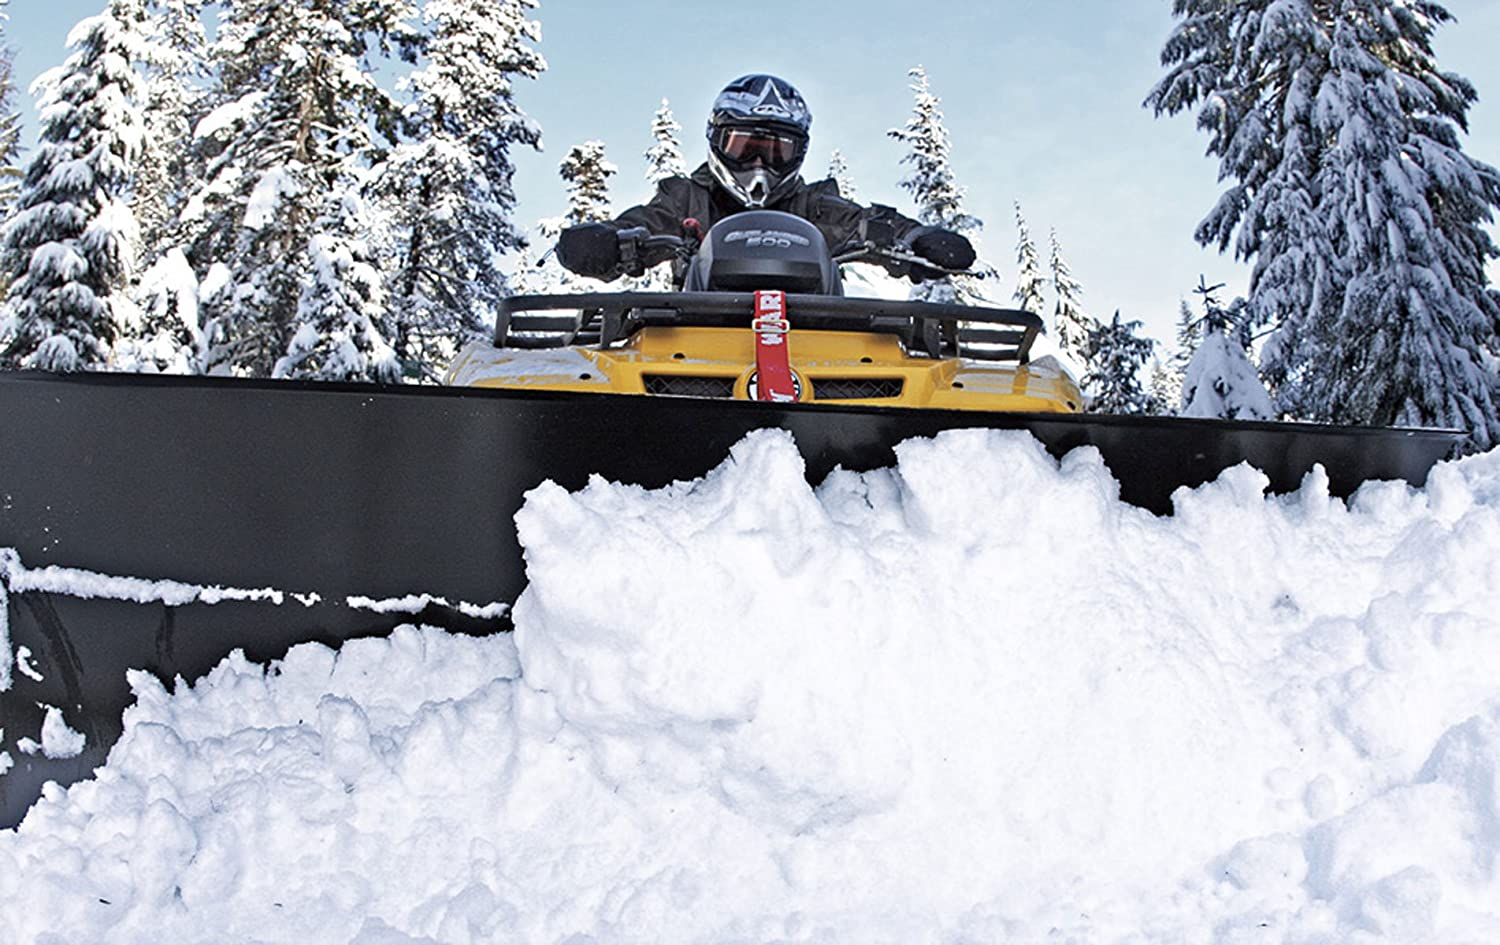 The Best 5 Snow Plow | Reviews & Buying Guide 2